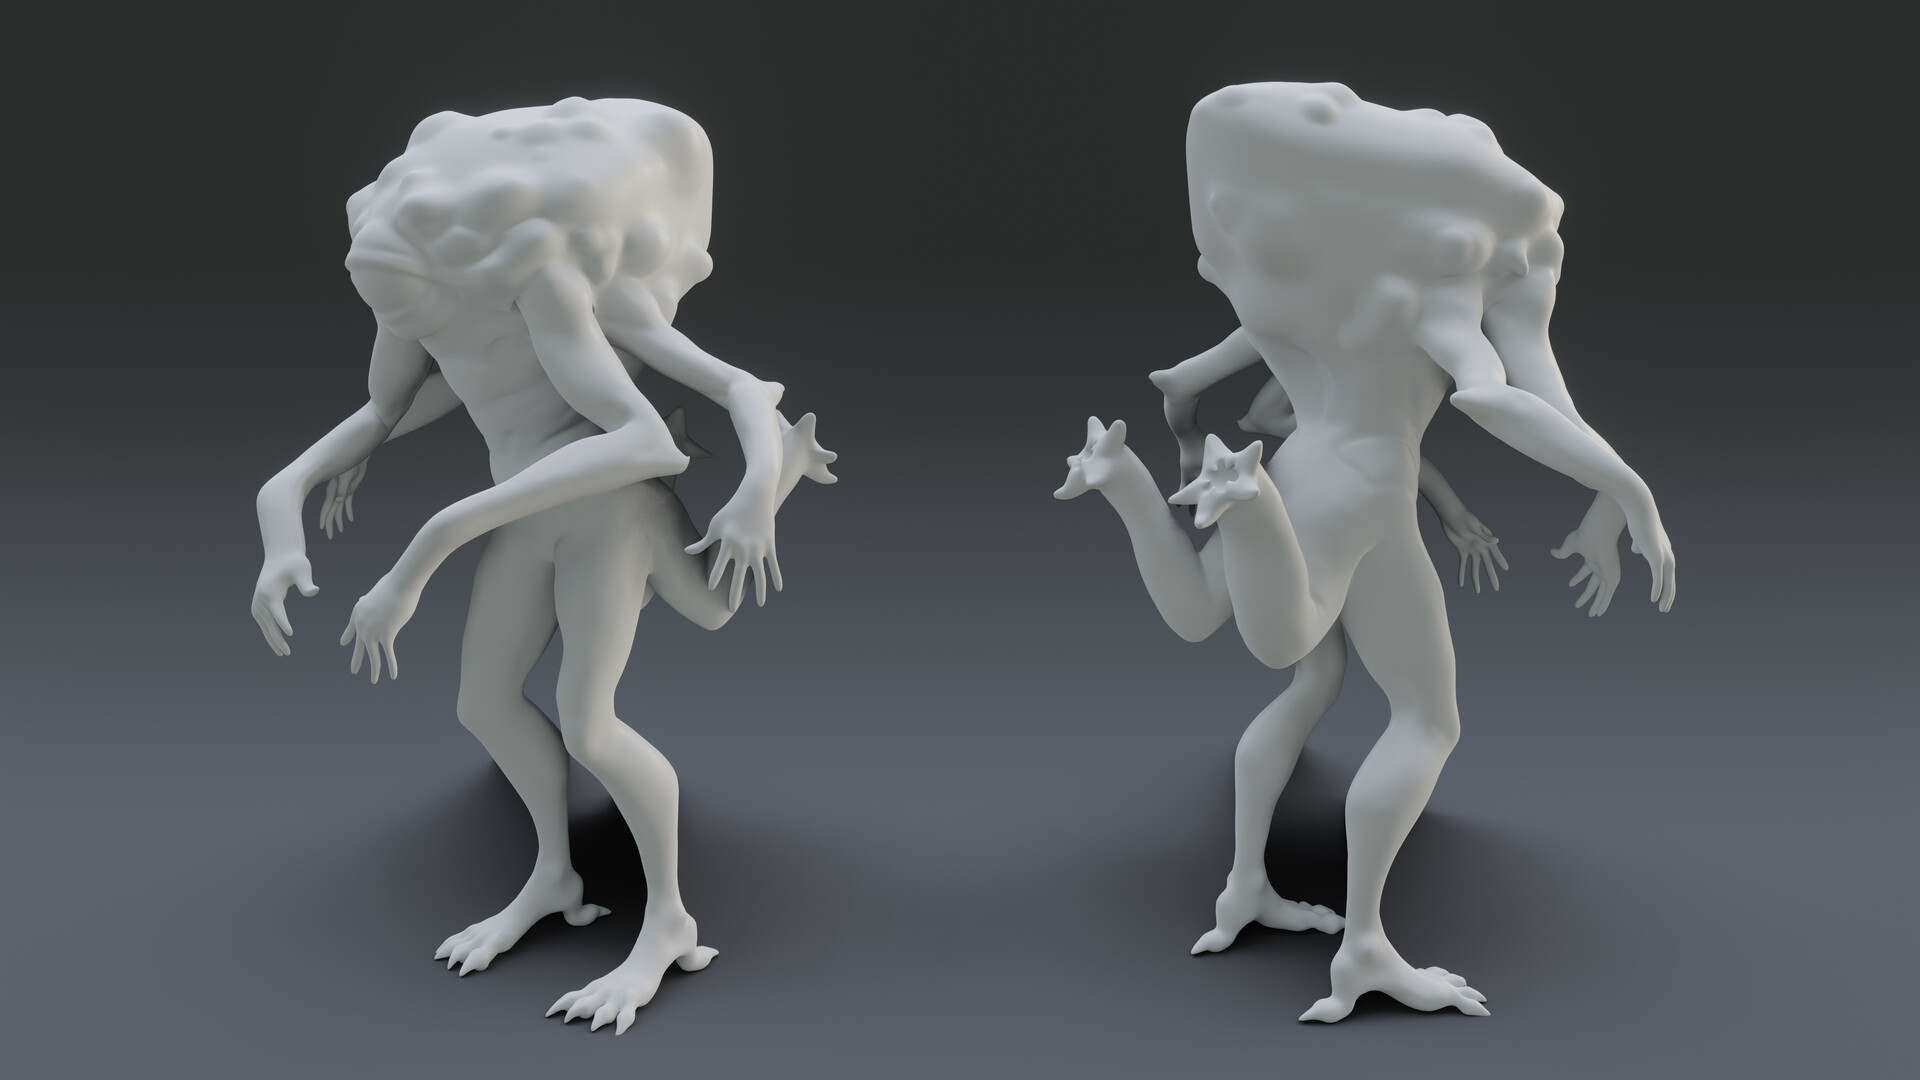 Basic Zbrush model and render I used to paint over